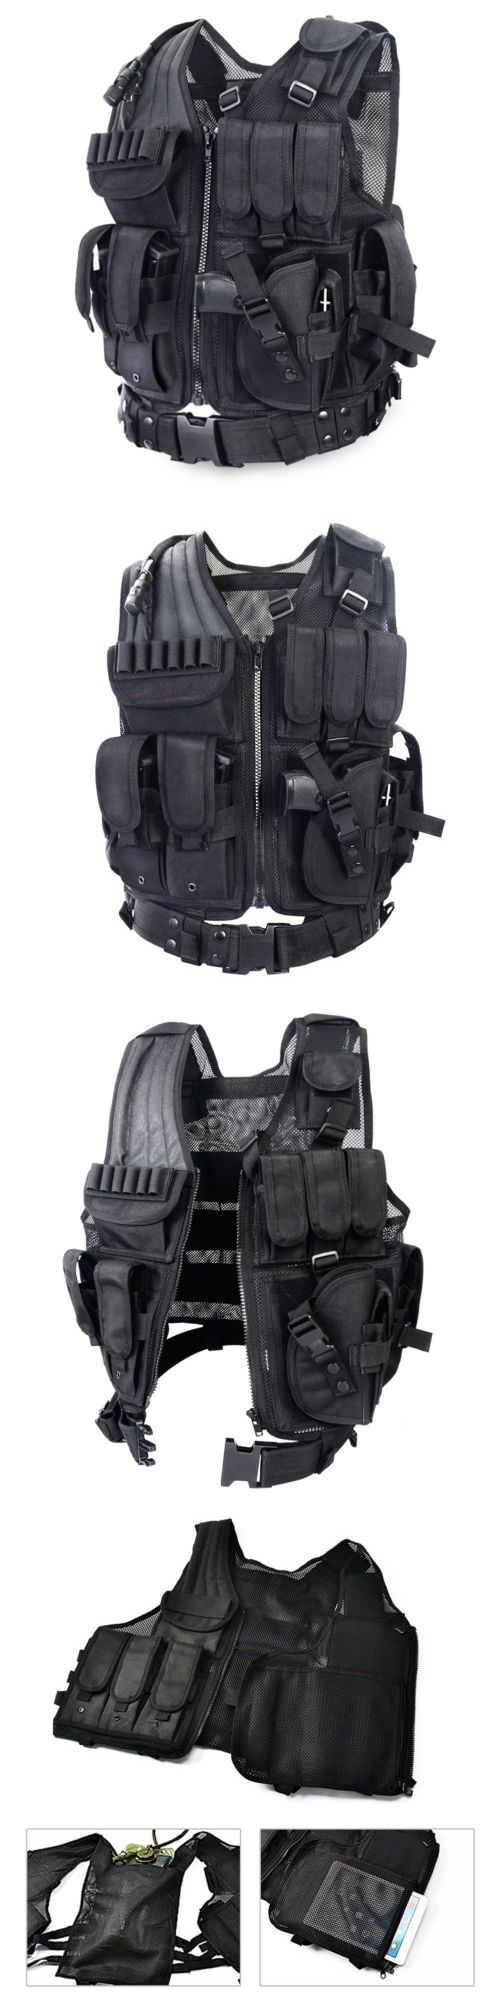 Chest Rigs and Tactical Vests 177891: Tactical Vest Army Military Equipment Supplies Carrier Combat Training Durable -> BUY IT NOW ONLY: $48.99 on eBay!